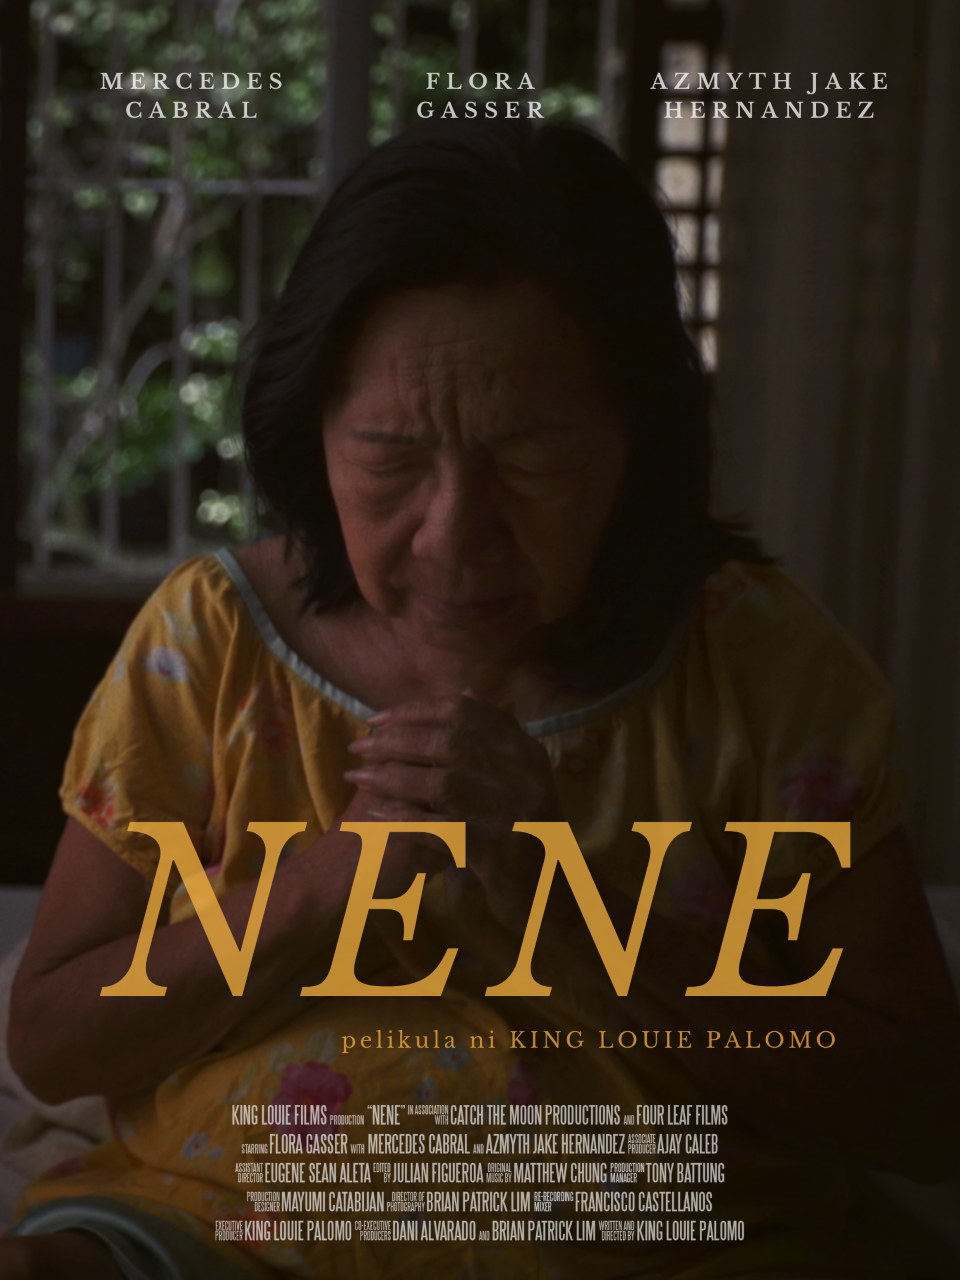 Poster for Nene showing protagonist.